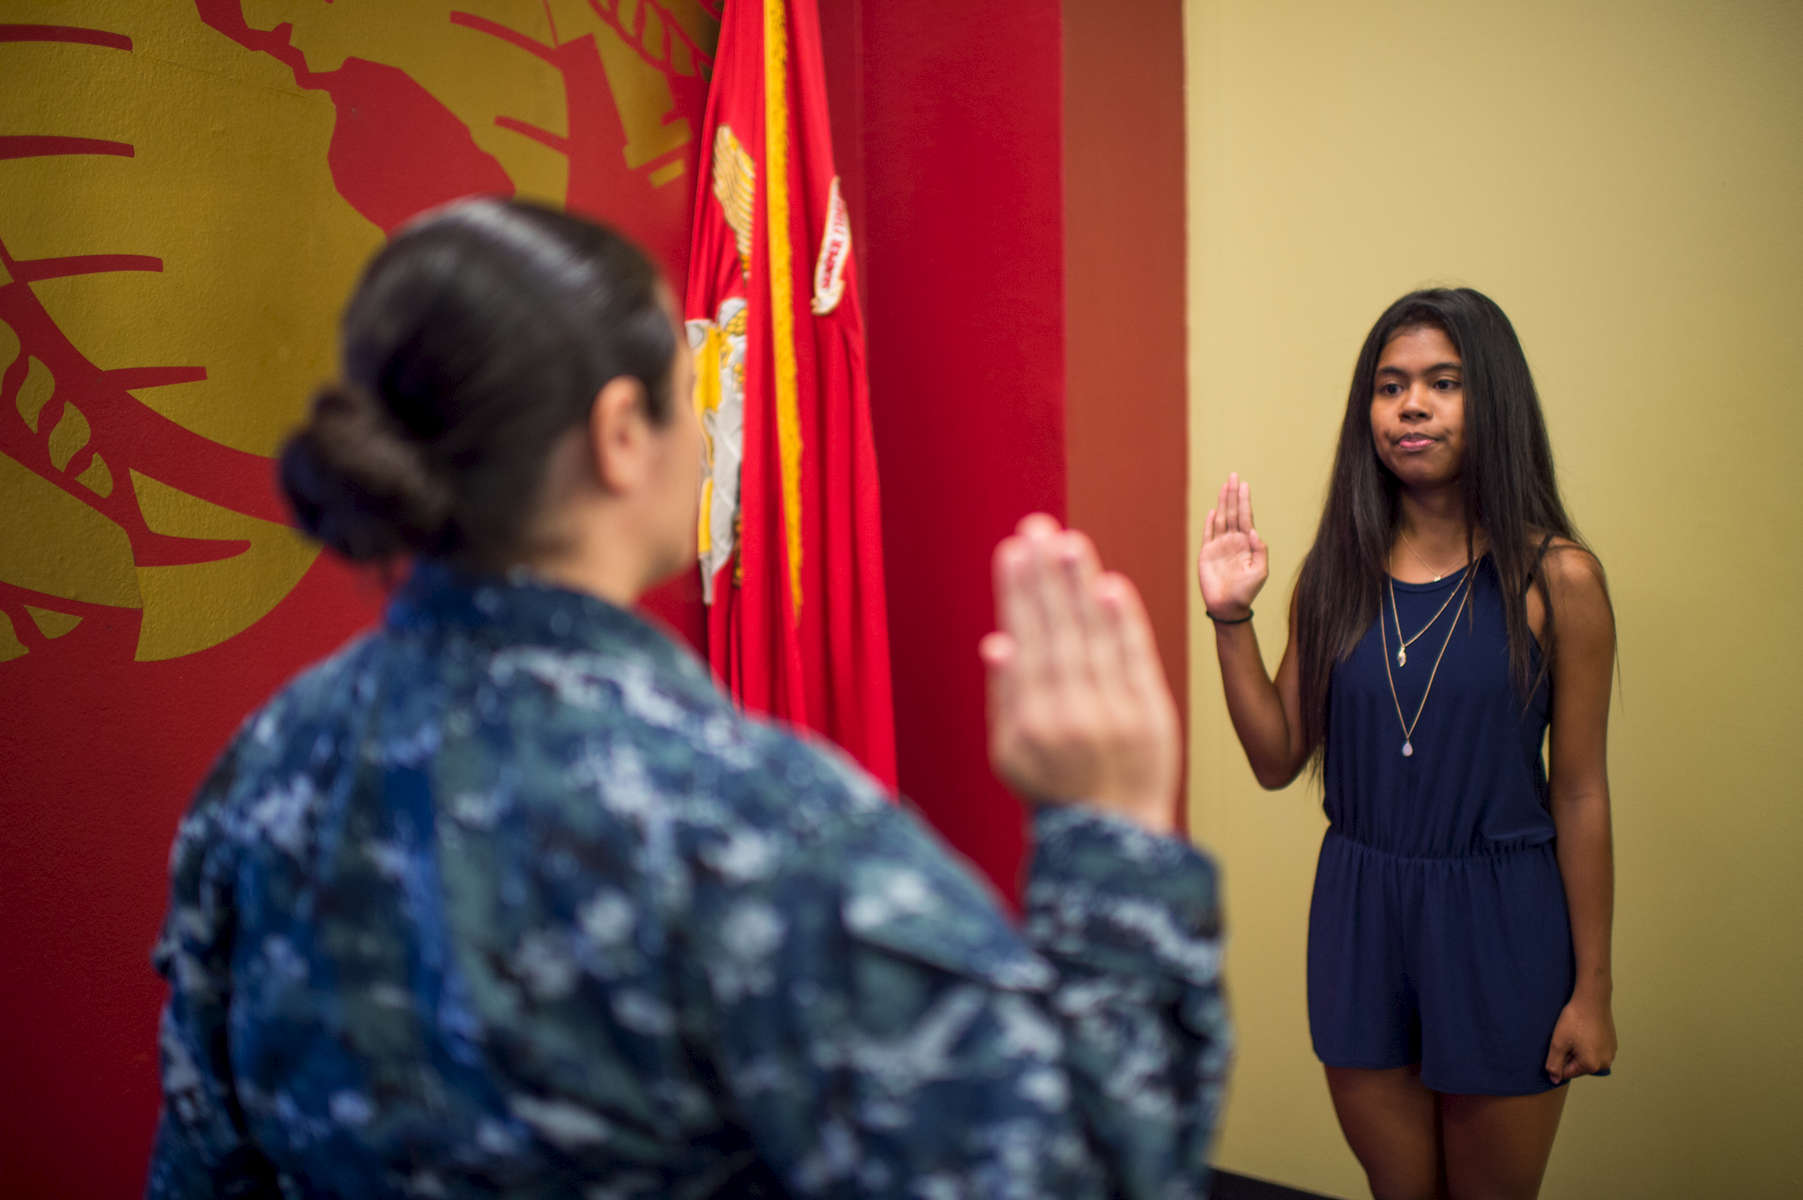 In Hagåtña, the capital city of Guam, Carla Haddock, Lt. Nurse Corp Officer Recruiter for the US Navy swears in 17-year-old Akashamahkeer Weber into the delayed entry program of the United States Marine Corps. She will head to bootcamp immediately following graduation from George Washington Highschool. (Aug 10, 2017)Photo by Nancy Borowick